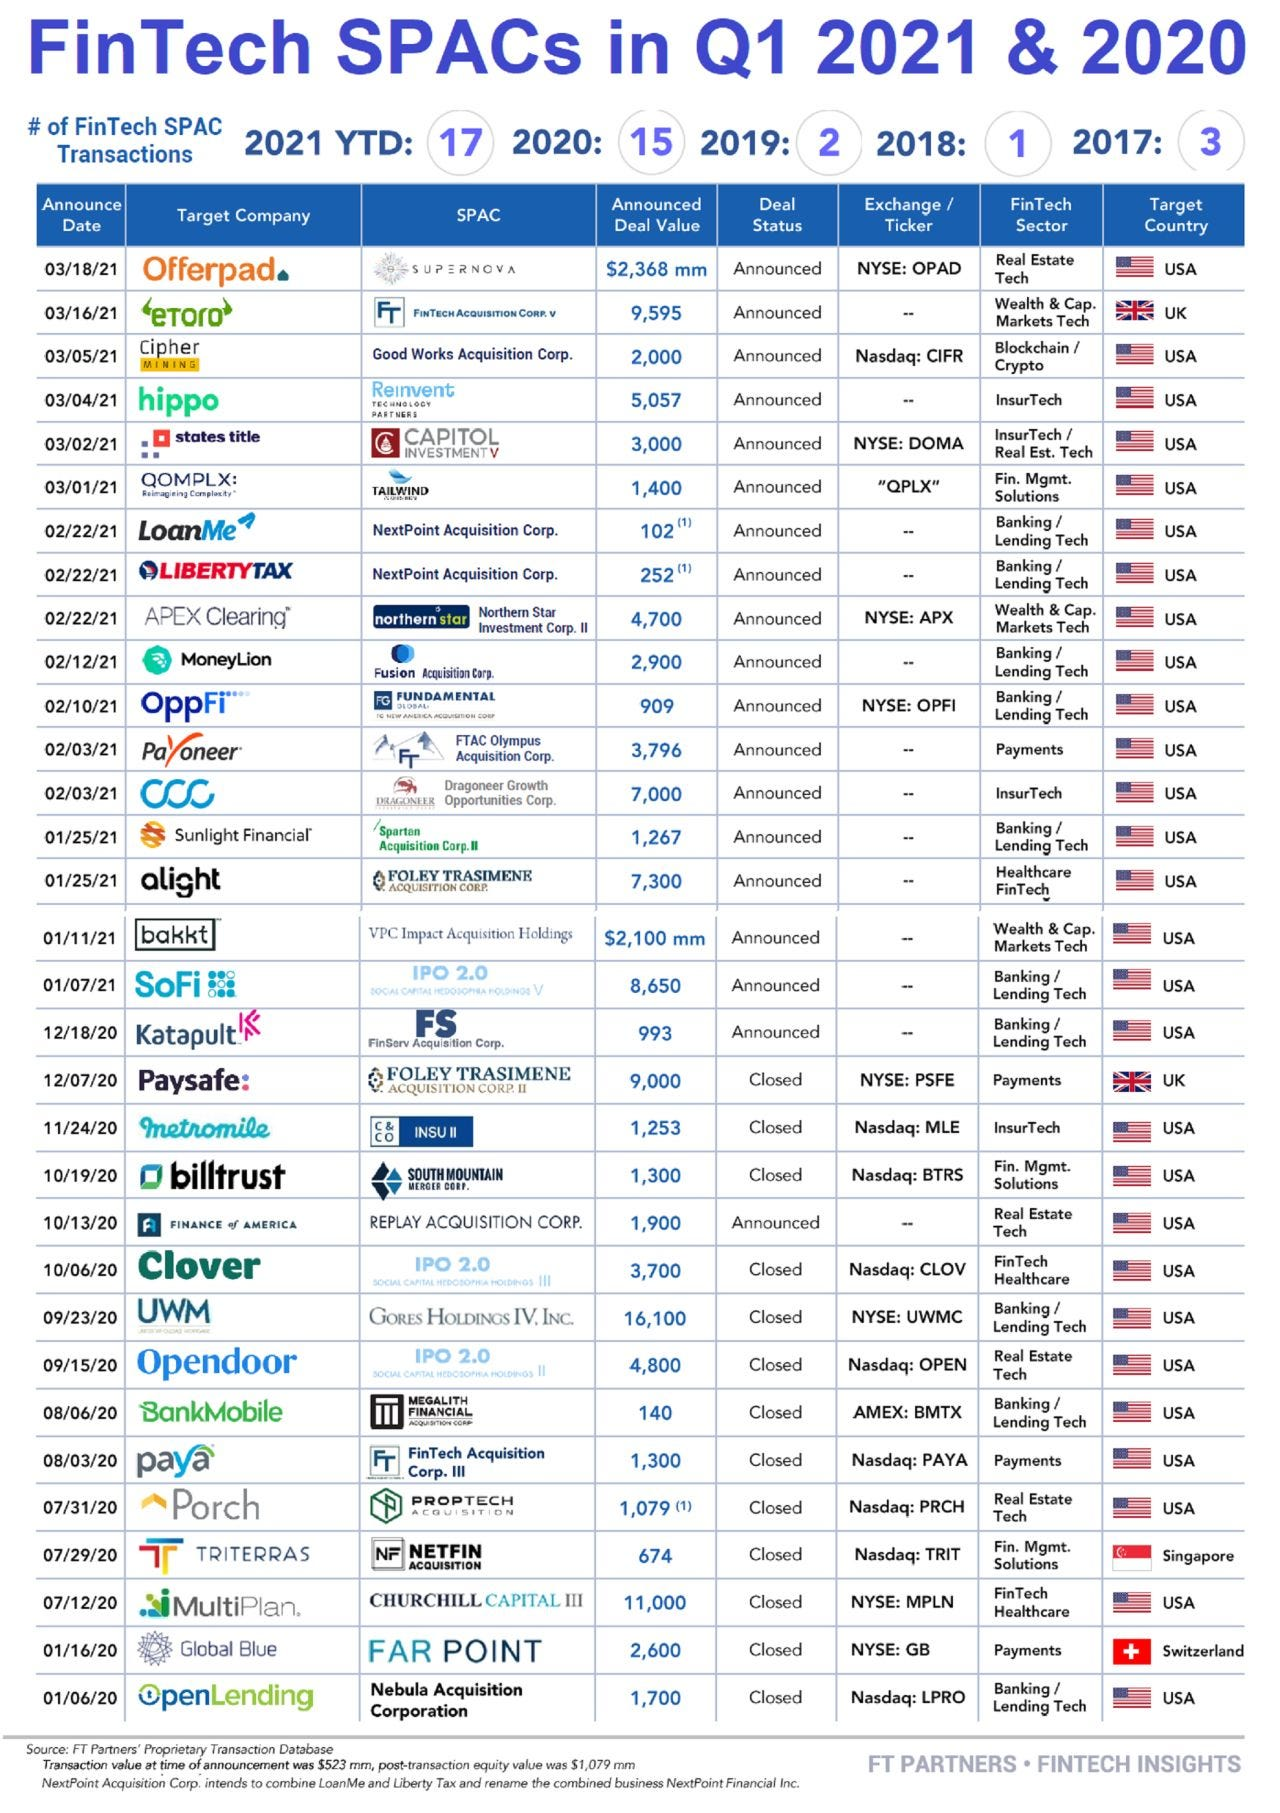 Fintech SPACs in Q1 2021 and 2020, Source- FT Partners